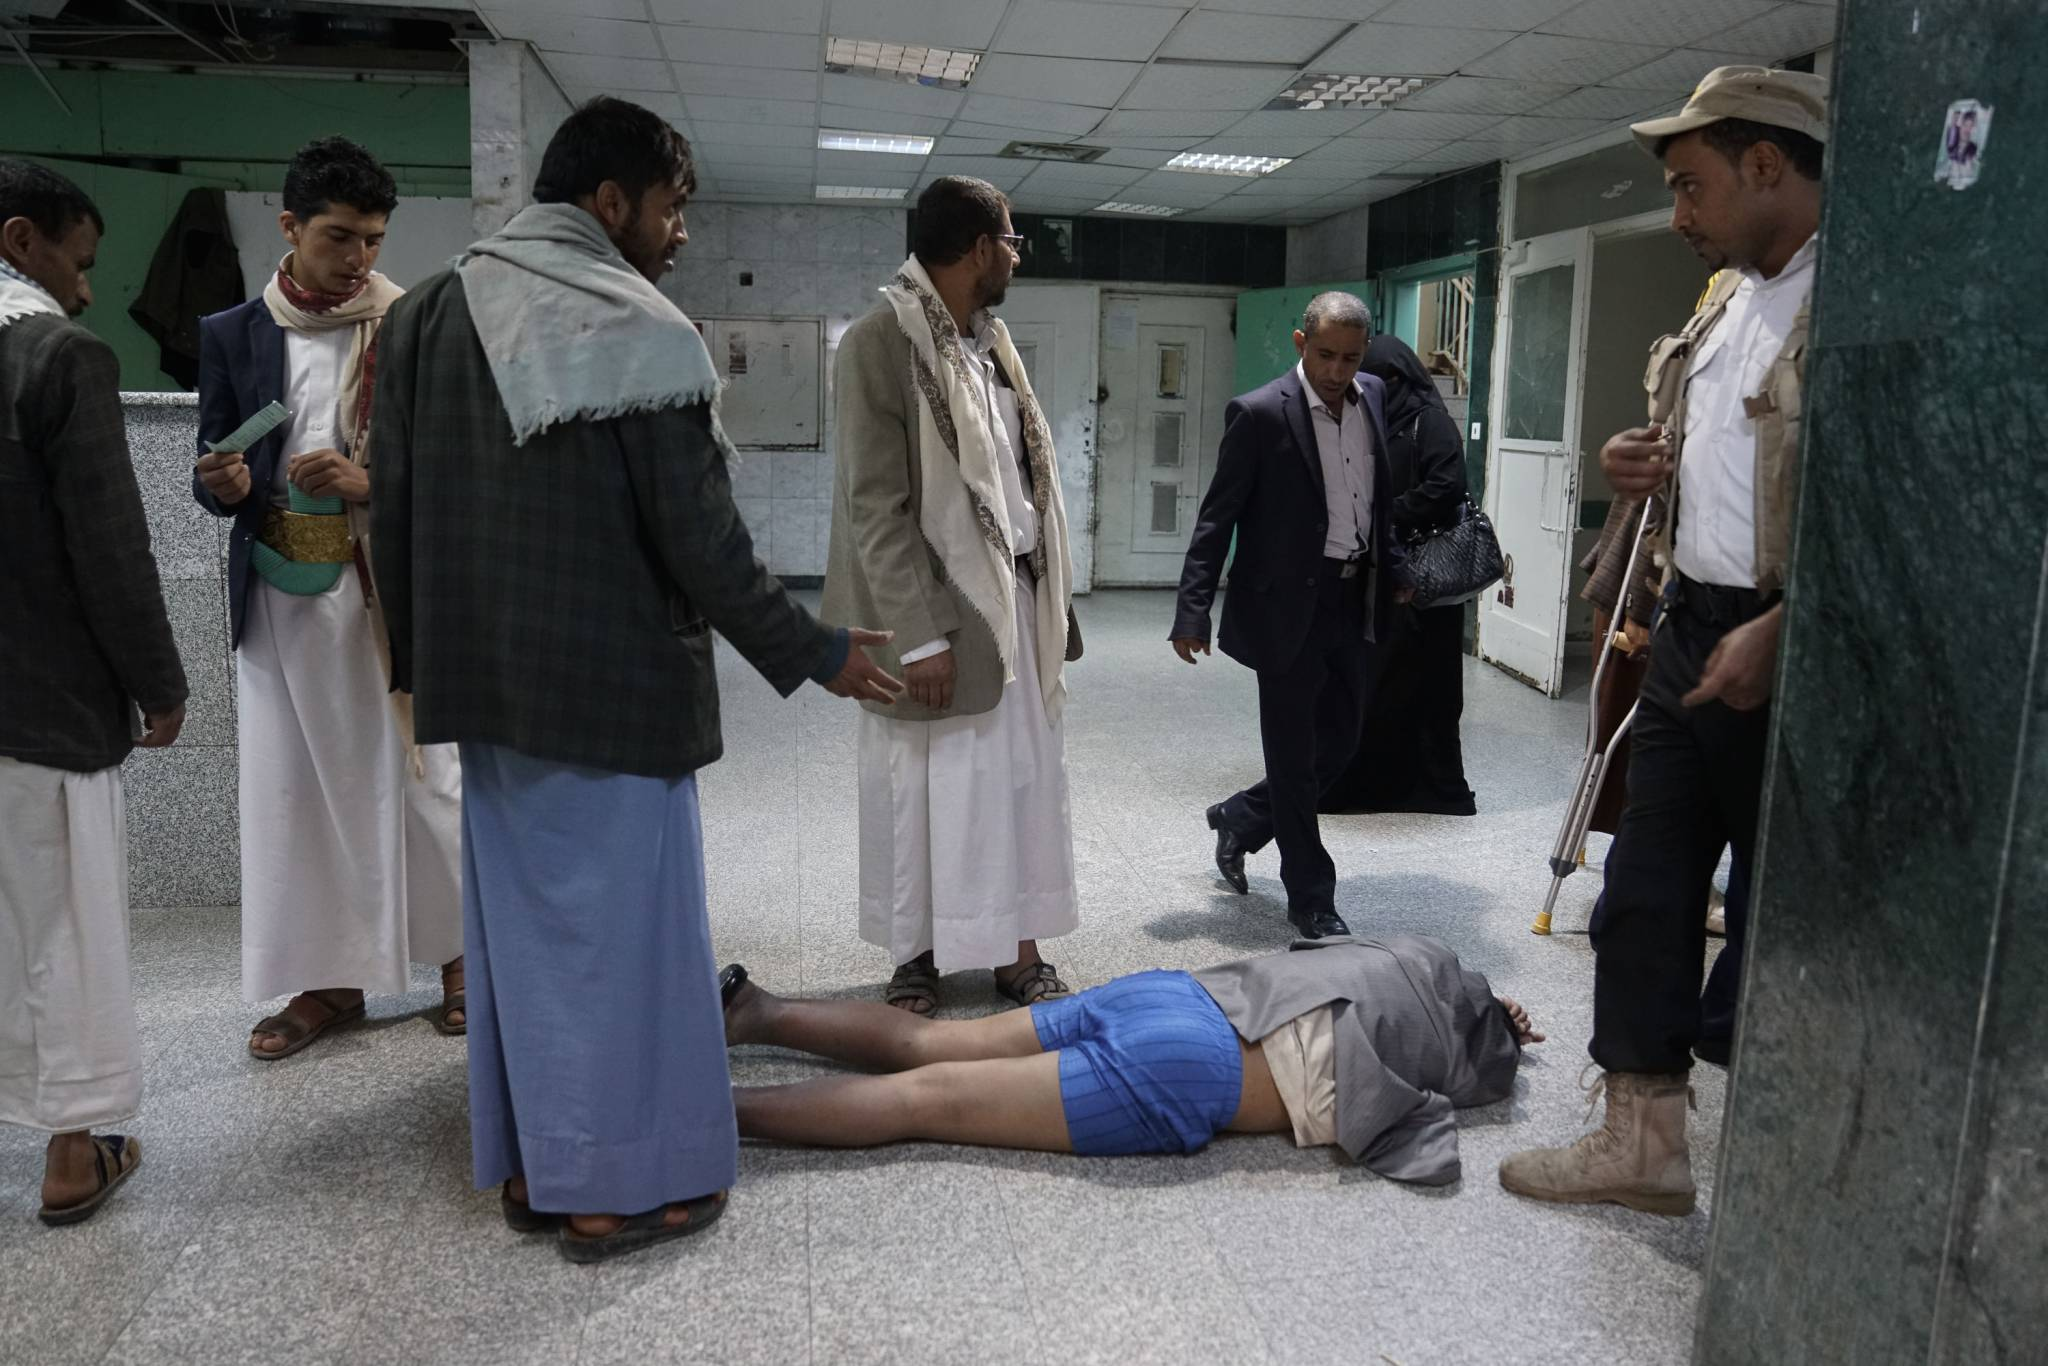 AL JOUMHOURI HOSPITAL, SANA'A, YEMEN - 3 MAY 2017.  A suspected cholera patient lies on the floor outside the emergency room, which has now been transformed into a cholera ward. A recent outbreak of cholera has swept over the city, following flooding and sewage overflow.   According to UNICEF figures, as of June 5th 2017, some 70,000 suspected cases of cholera had been reported in the past month alone. That number could quadruple to 300,000 cases by the start of July according to a recent statement by the regional director of UNICEF, Geert Cappelaere. The war is severely hampering access for critical medical supplies.